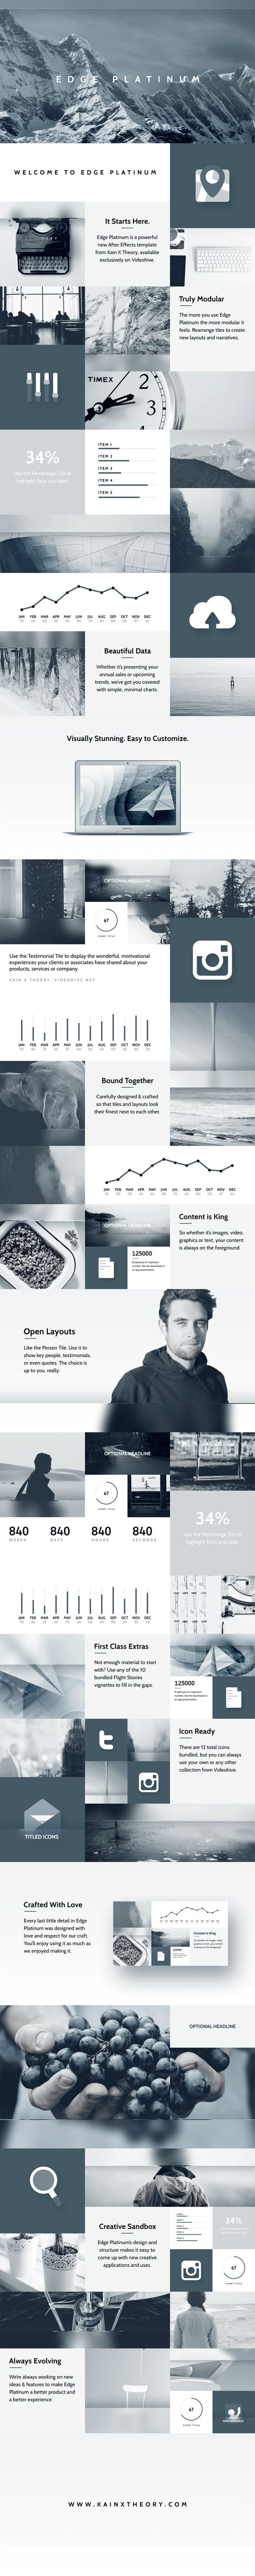 Download here: http://goo.gl/lg3Ps2  Edge Platinum is a powerful new After Effects template, designed and animated by Kain X Theory. The first in a series of grid-based presentations, it uses a grid framework to showcase images, video and any other piece of information in a smooth, elegant and professional manner.  #grid #design #web #after #effects #videohive #motion #graphics #framework #minimal #elegant #glass #template